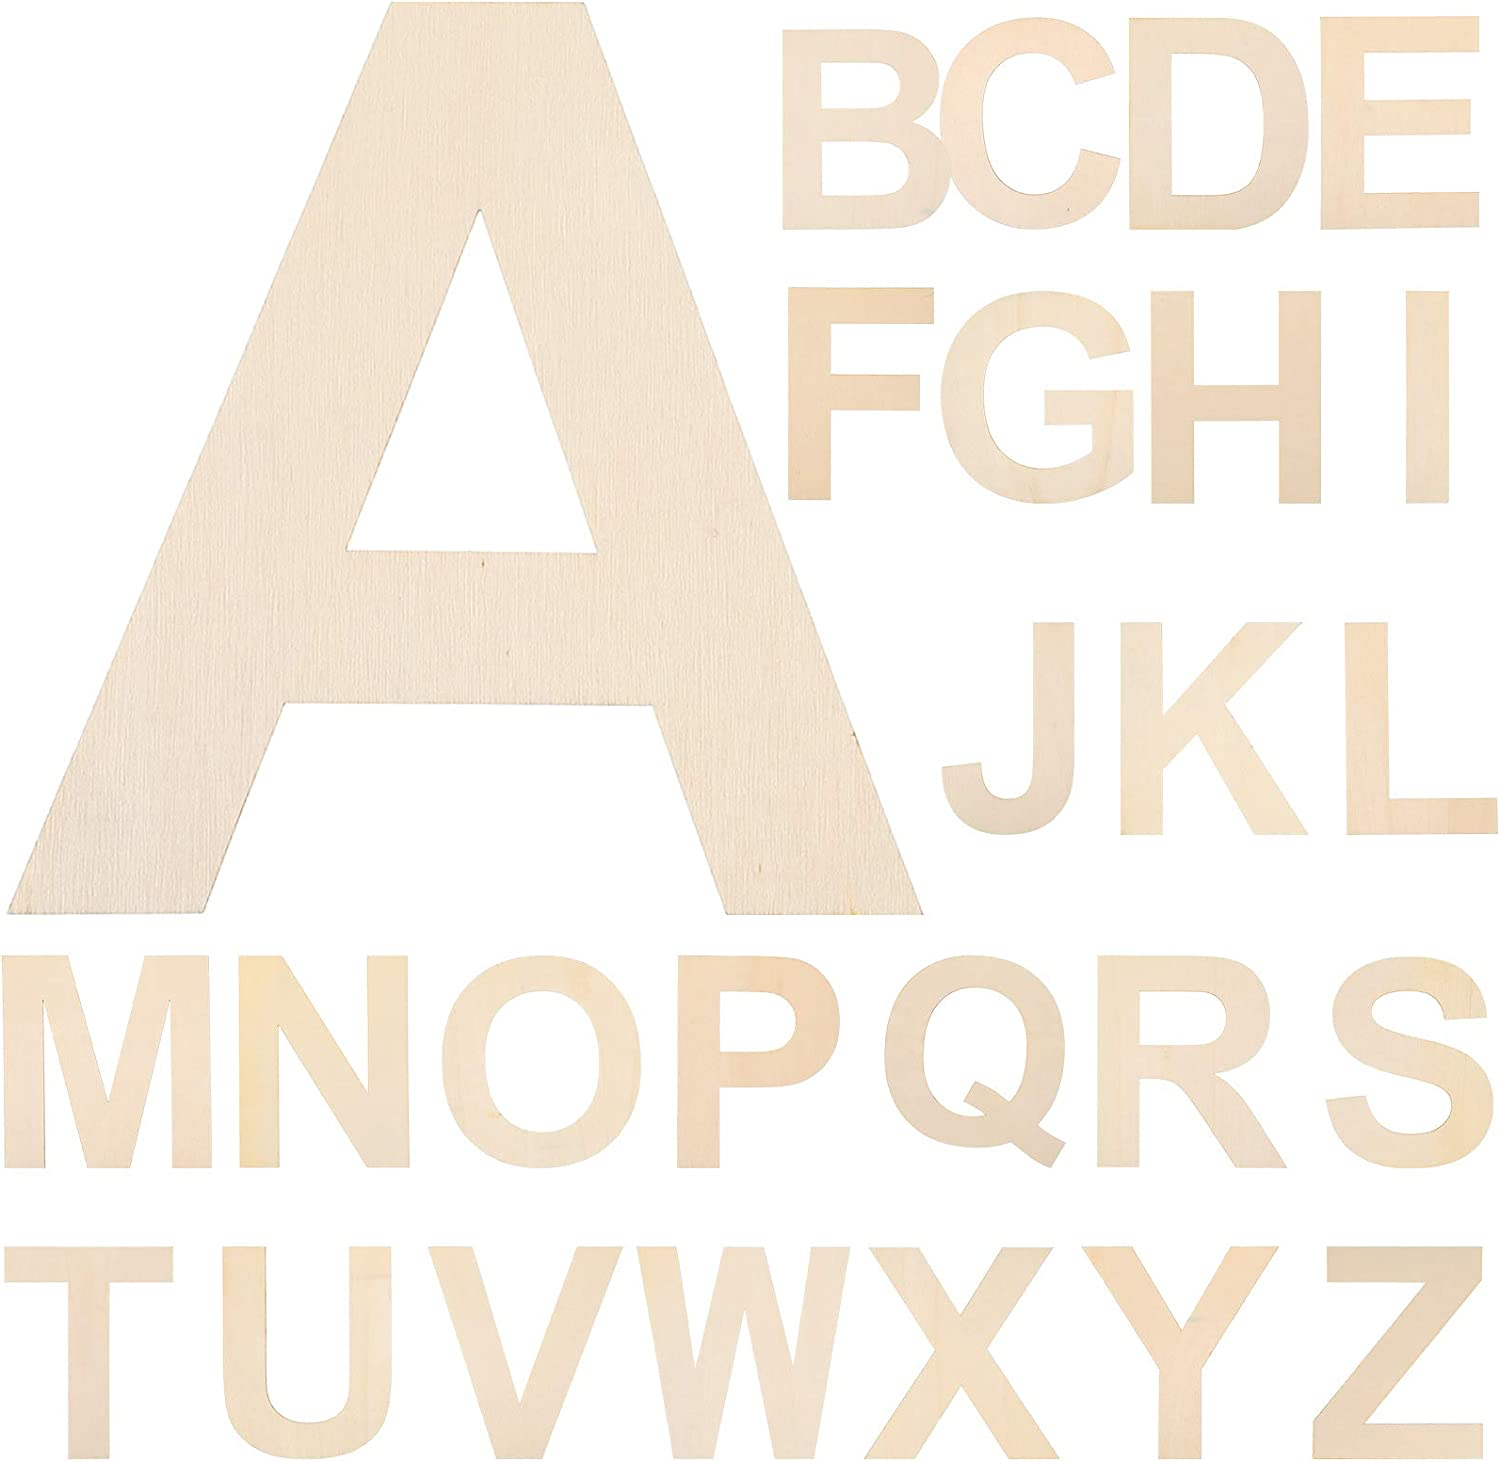 26 Pieces 11 Inches Wooden Alphabet Letters Large Wooden Craft Letters Natural Wood Capital Letters DIY Wooden Alphabet Cutout for Home Wall Decor Kids